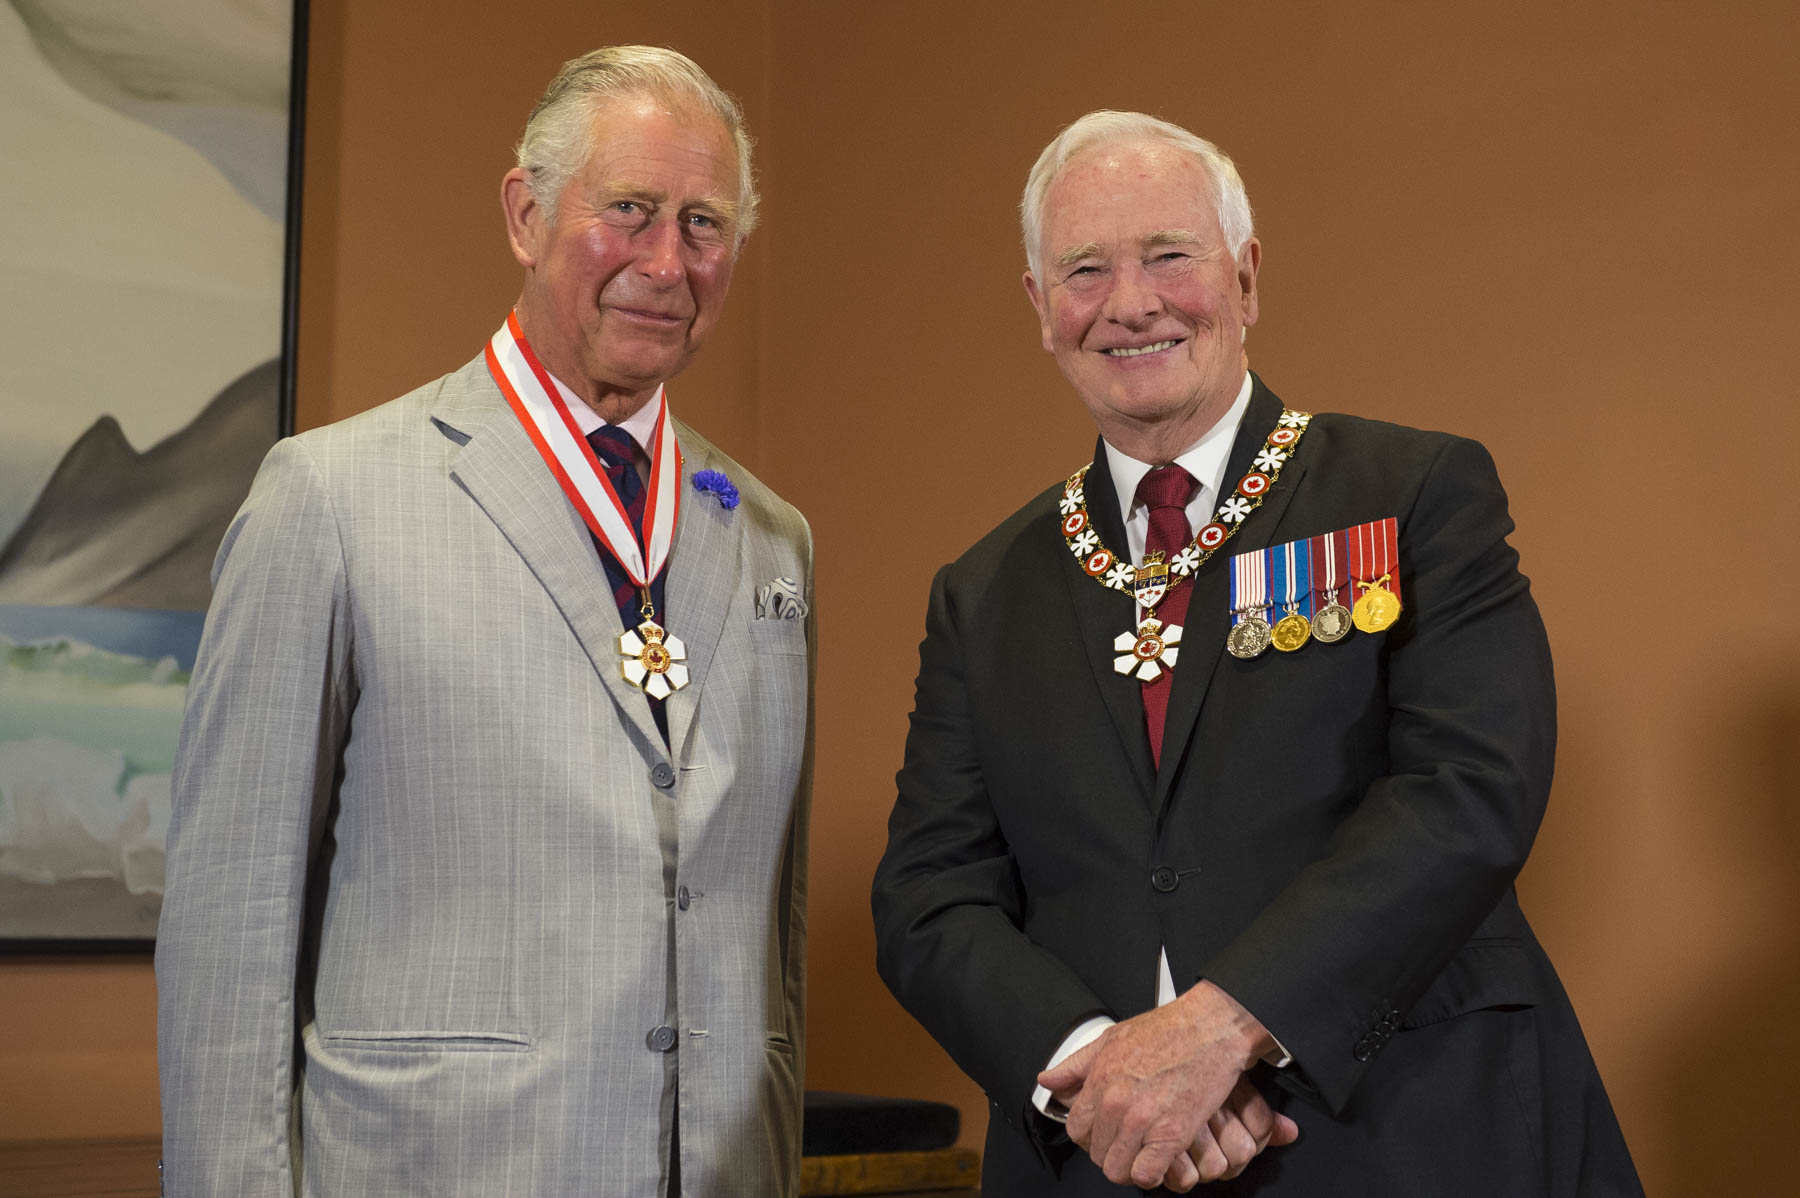 His Excellency the Right Honourable David Johnston, Governor General of Canada, presented the insignia of Companion of the Order of Canada to His Royal Highness The Prince of Wales, during a special presentation at Rideau Hall. This ceremony was held as part of the 2017 Royal Tour.